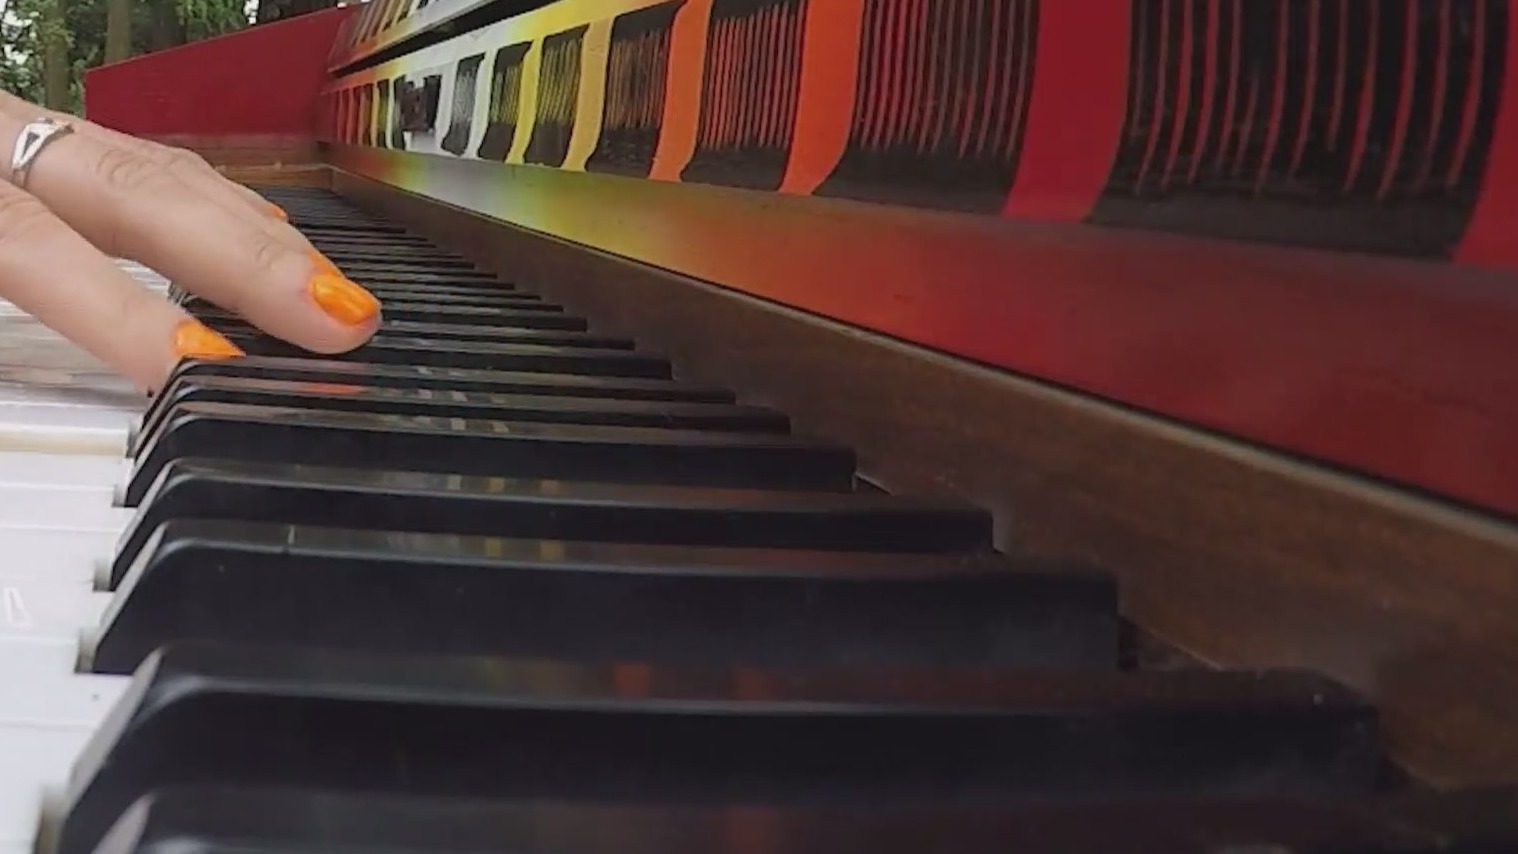 Outdoor pianos bring music to the Rose City with 'Piano. Push. Play.'